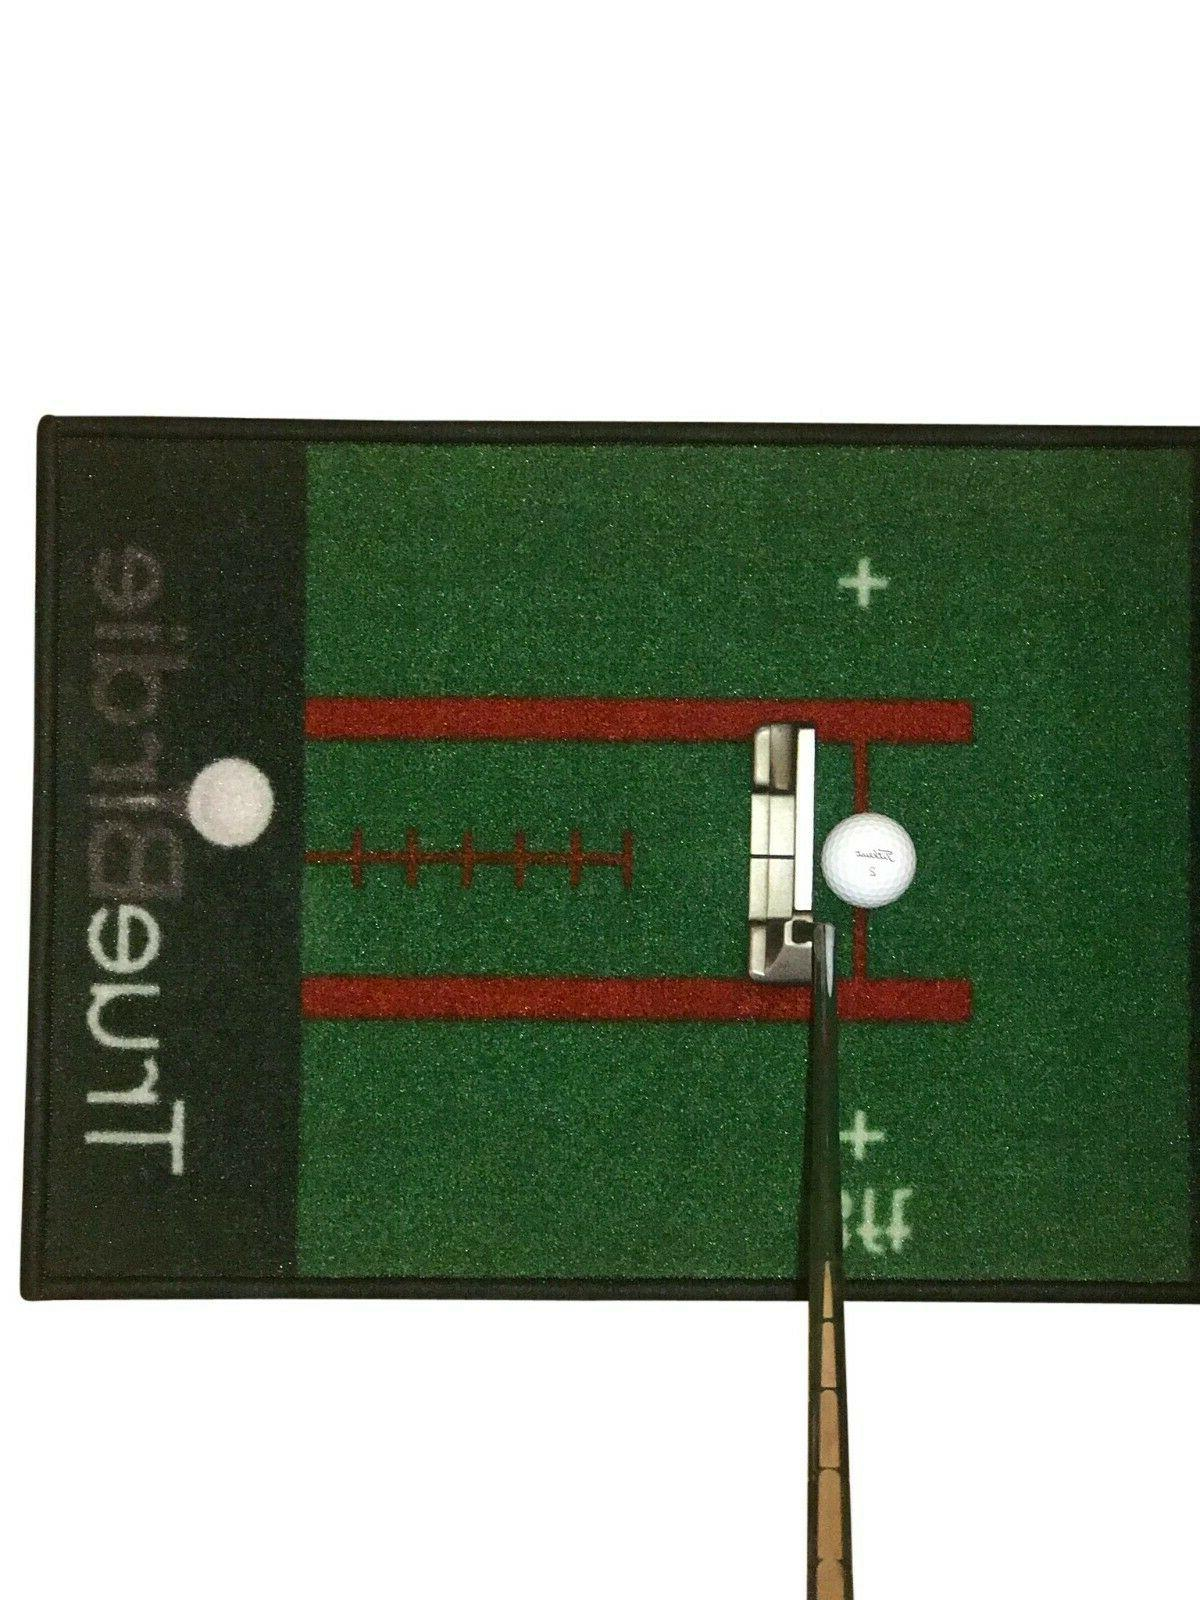 Indoor Putting Golf with Travel Bag Putt Alignment